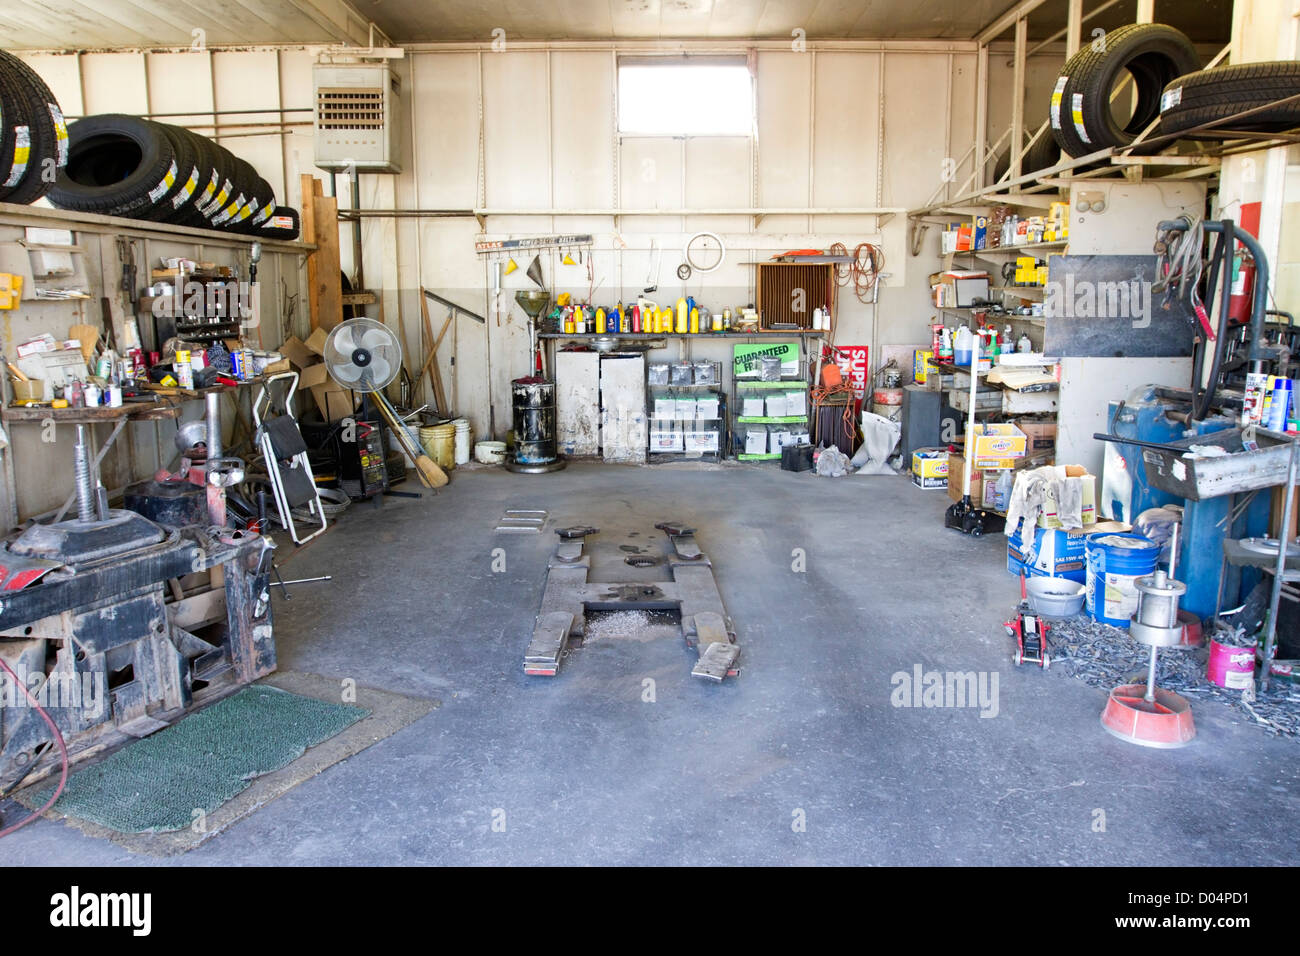 Auto repair garage in Marfa, Texas. - Stock Image